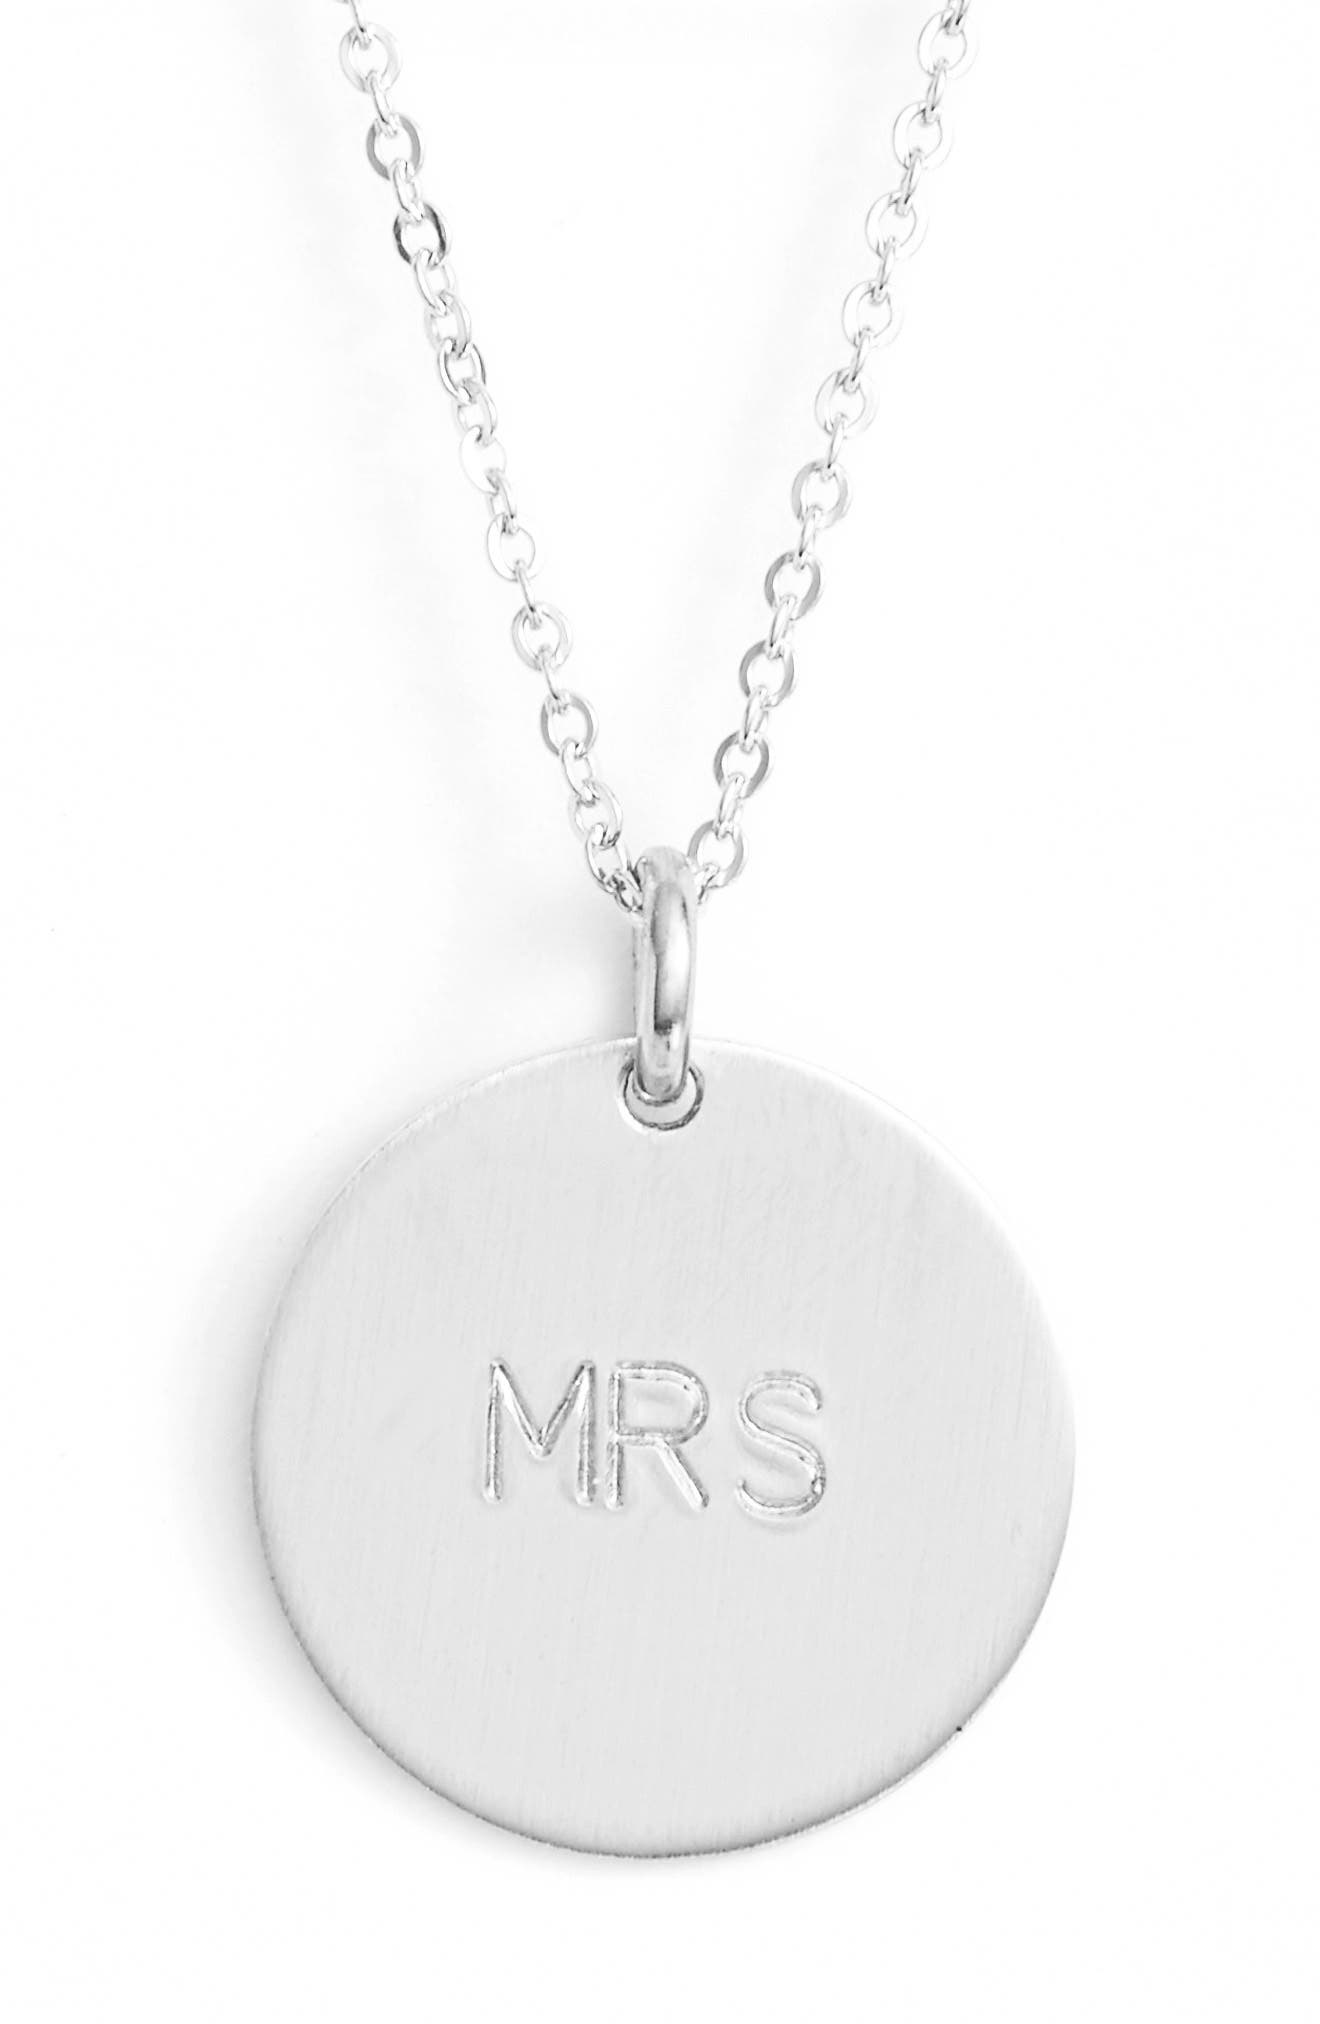 NASHELLE Newlywed Pendant Necklace